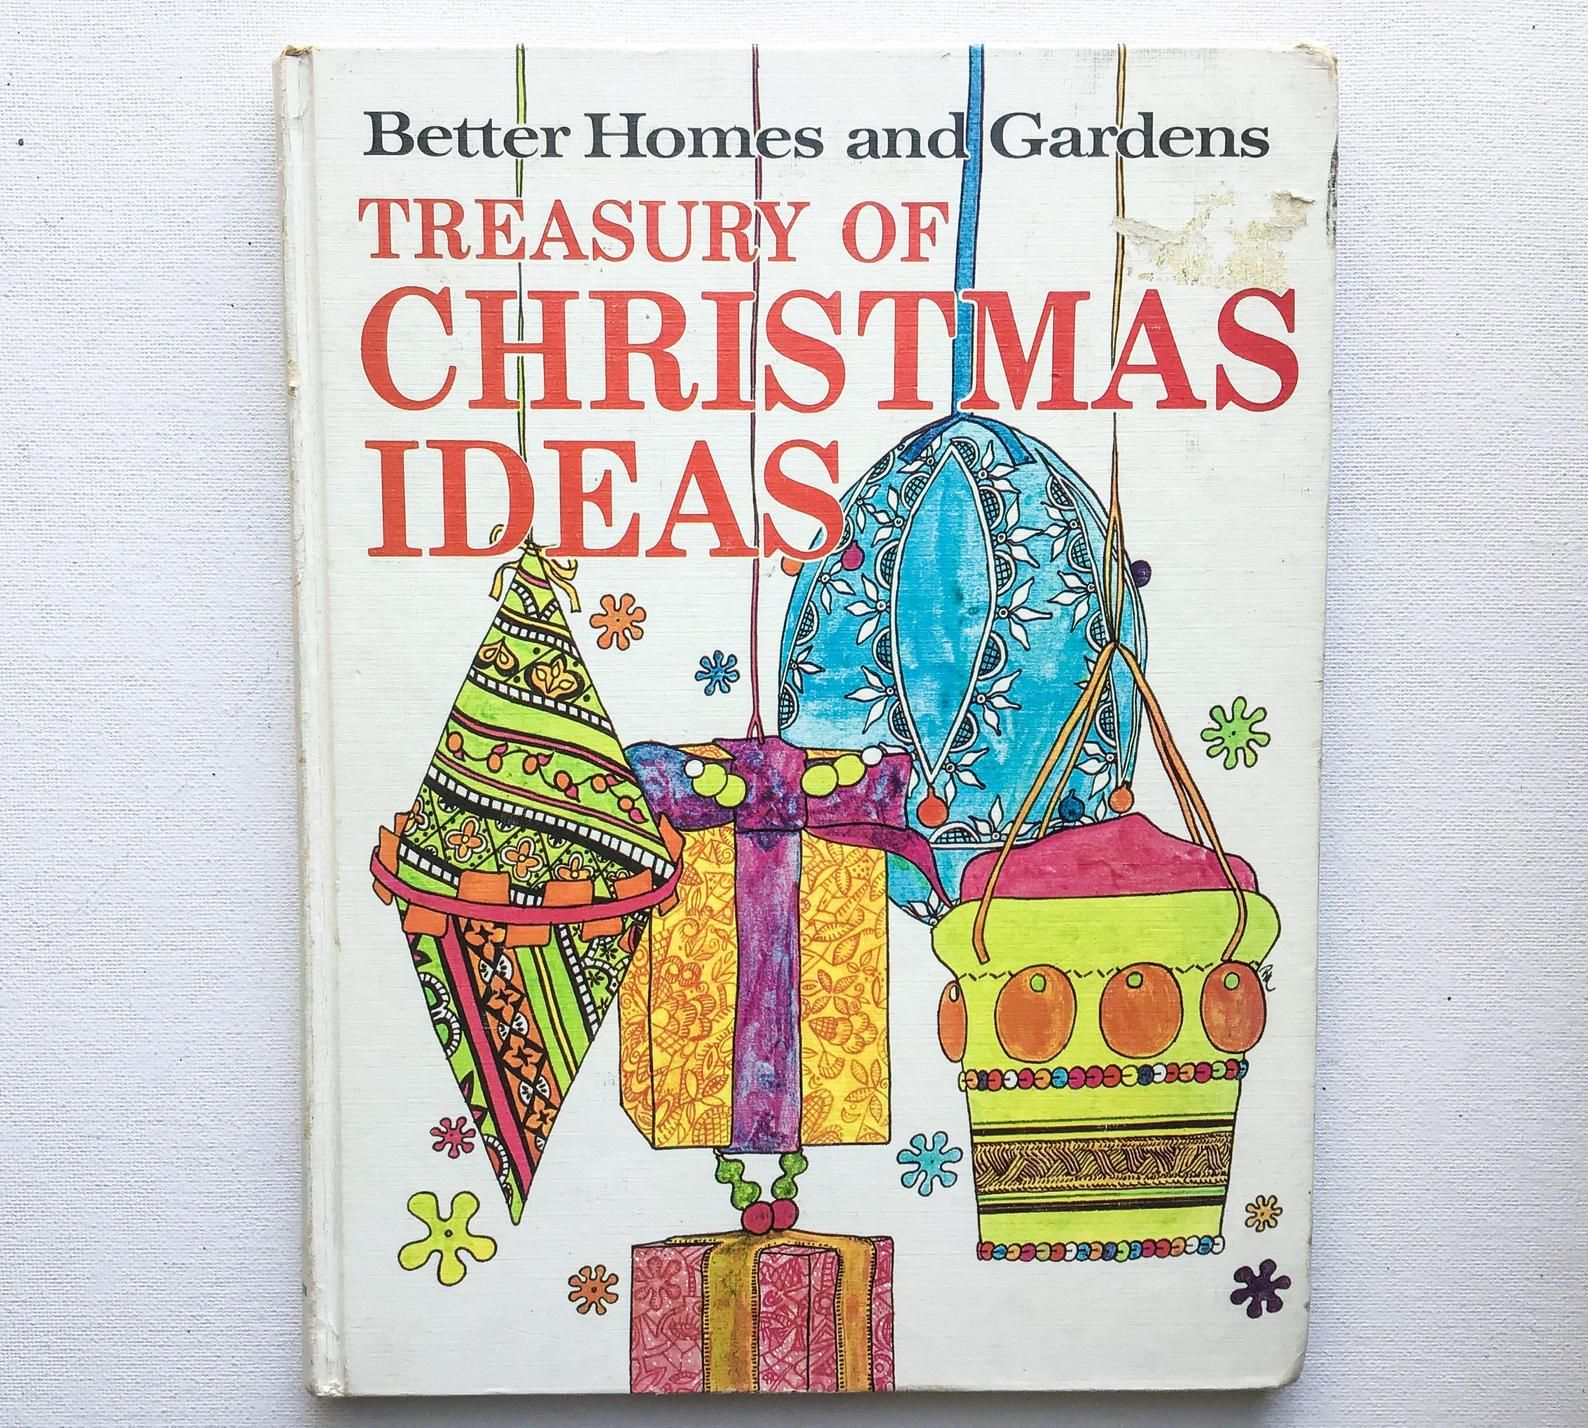 0f2f73c83c5314473c22f92be4745c85 - Better Homes And Gardens Christmas Books